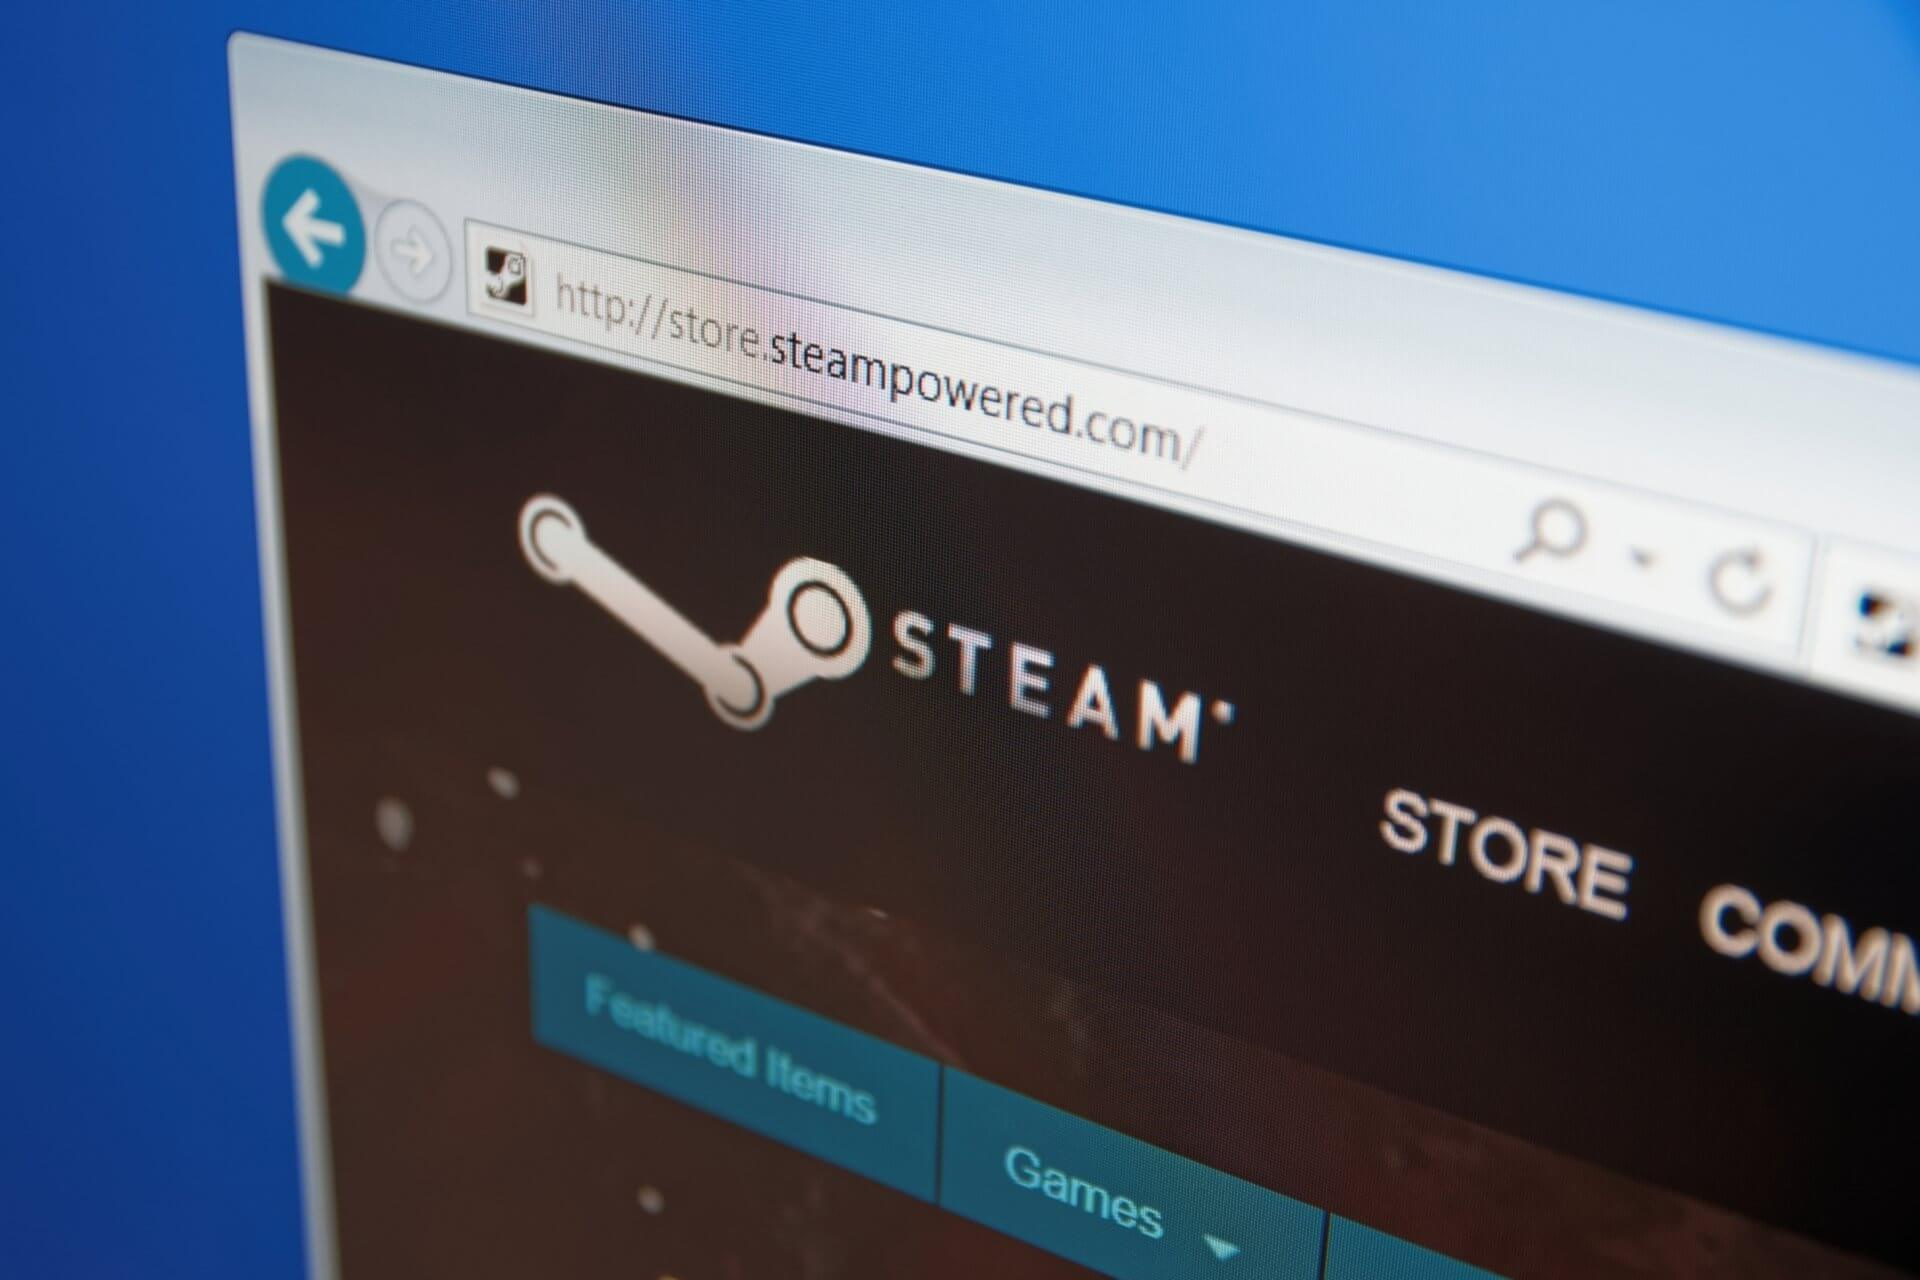 Steam browser not working